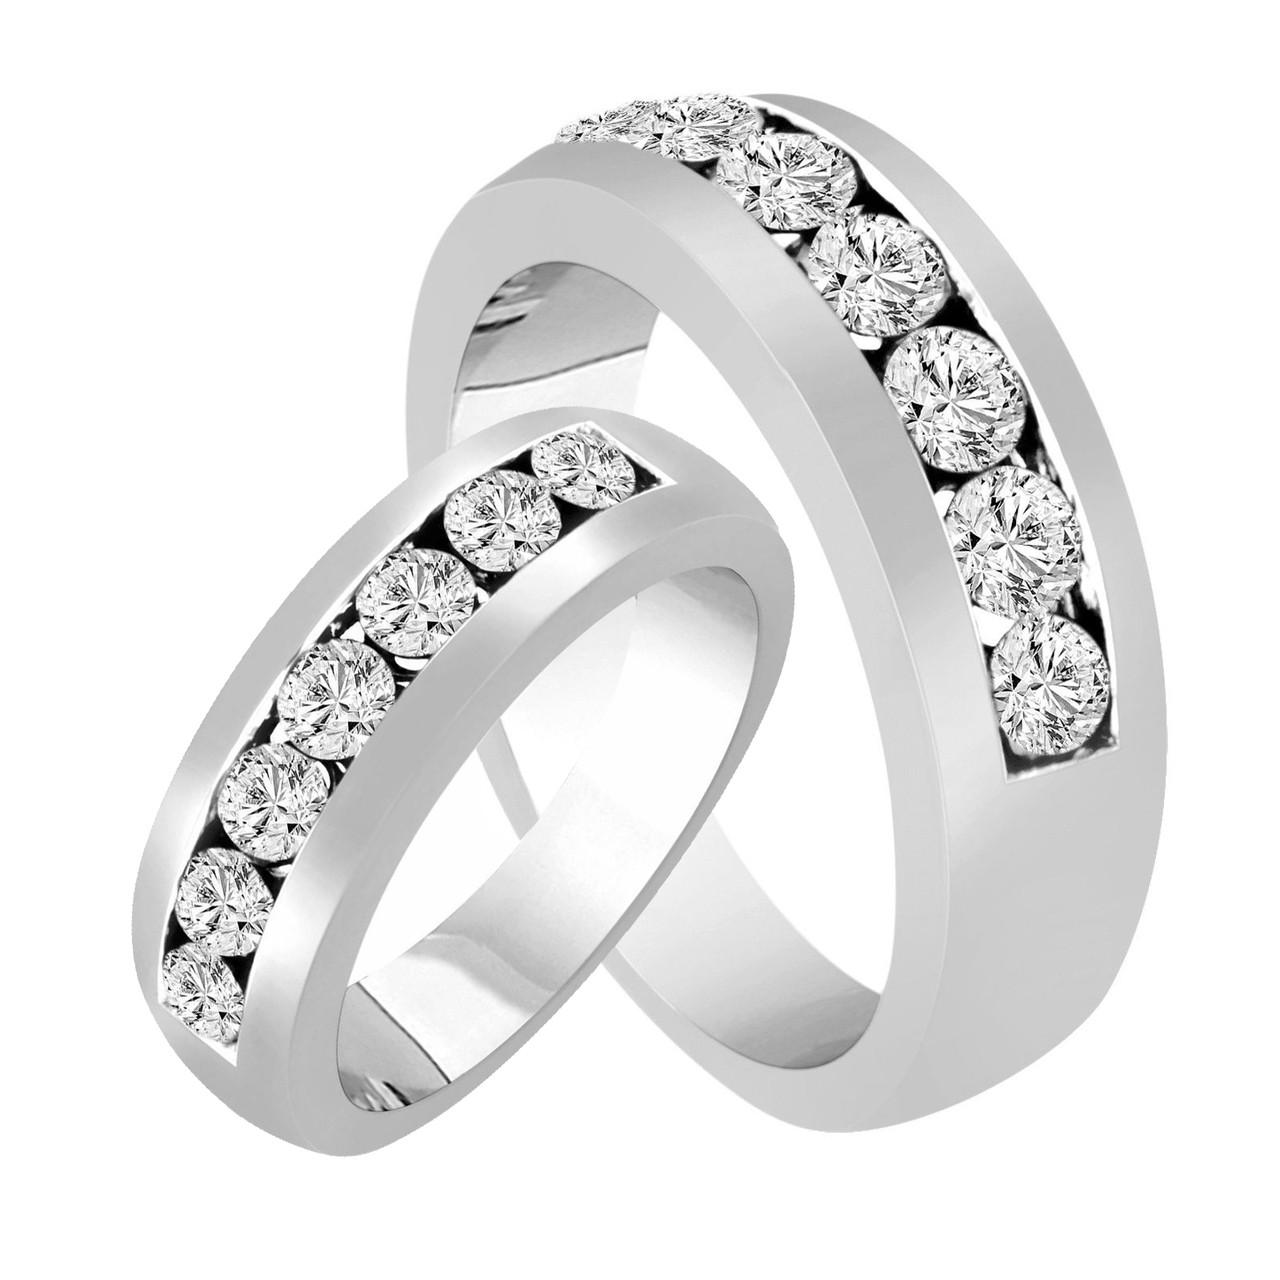 It is an image of His & Hers Wedding Rings, Diamond Matching Bands, Couple Wedding Bands Set, Half Eternity Rings, Unique 42.42 Carat 424K White Gold